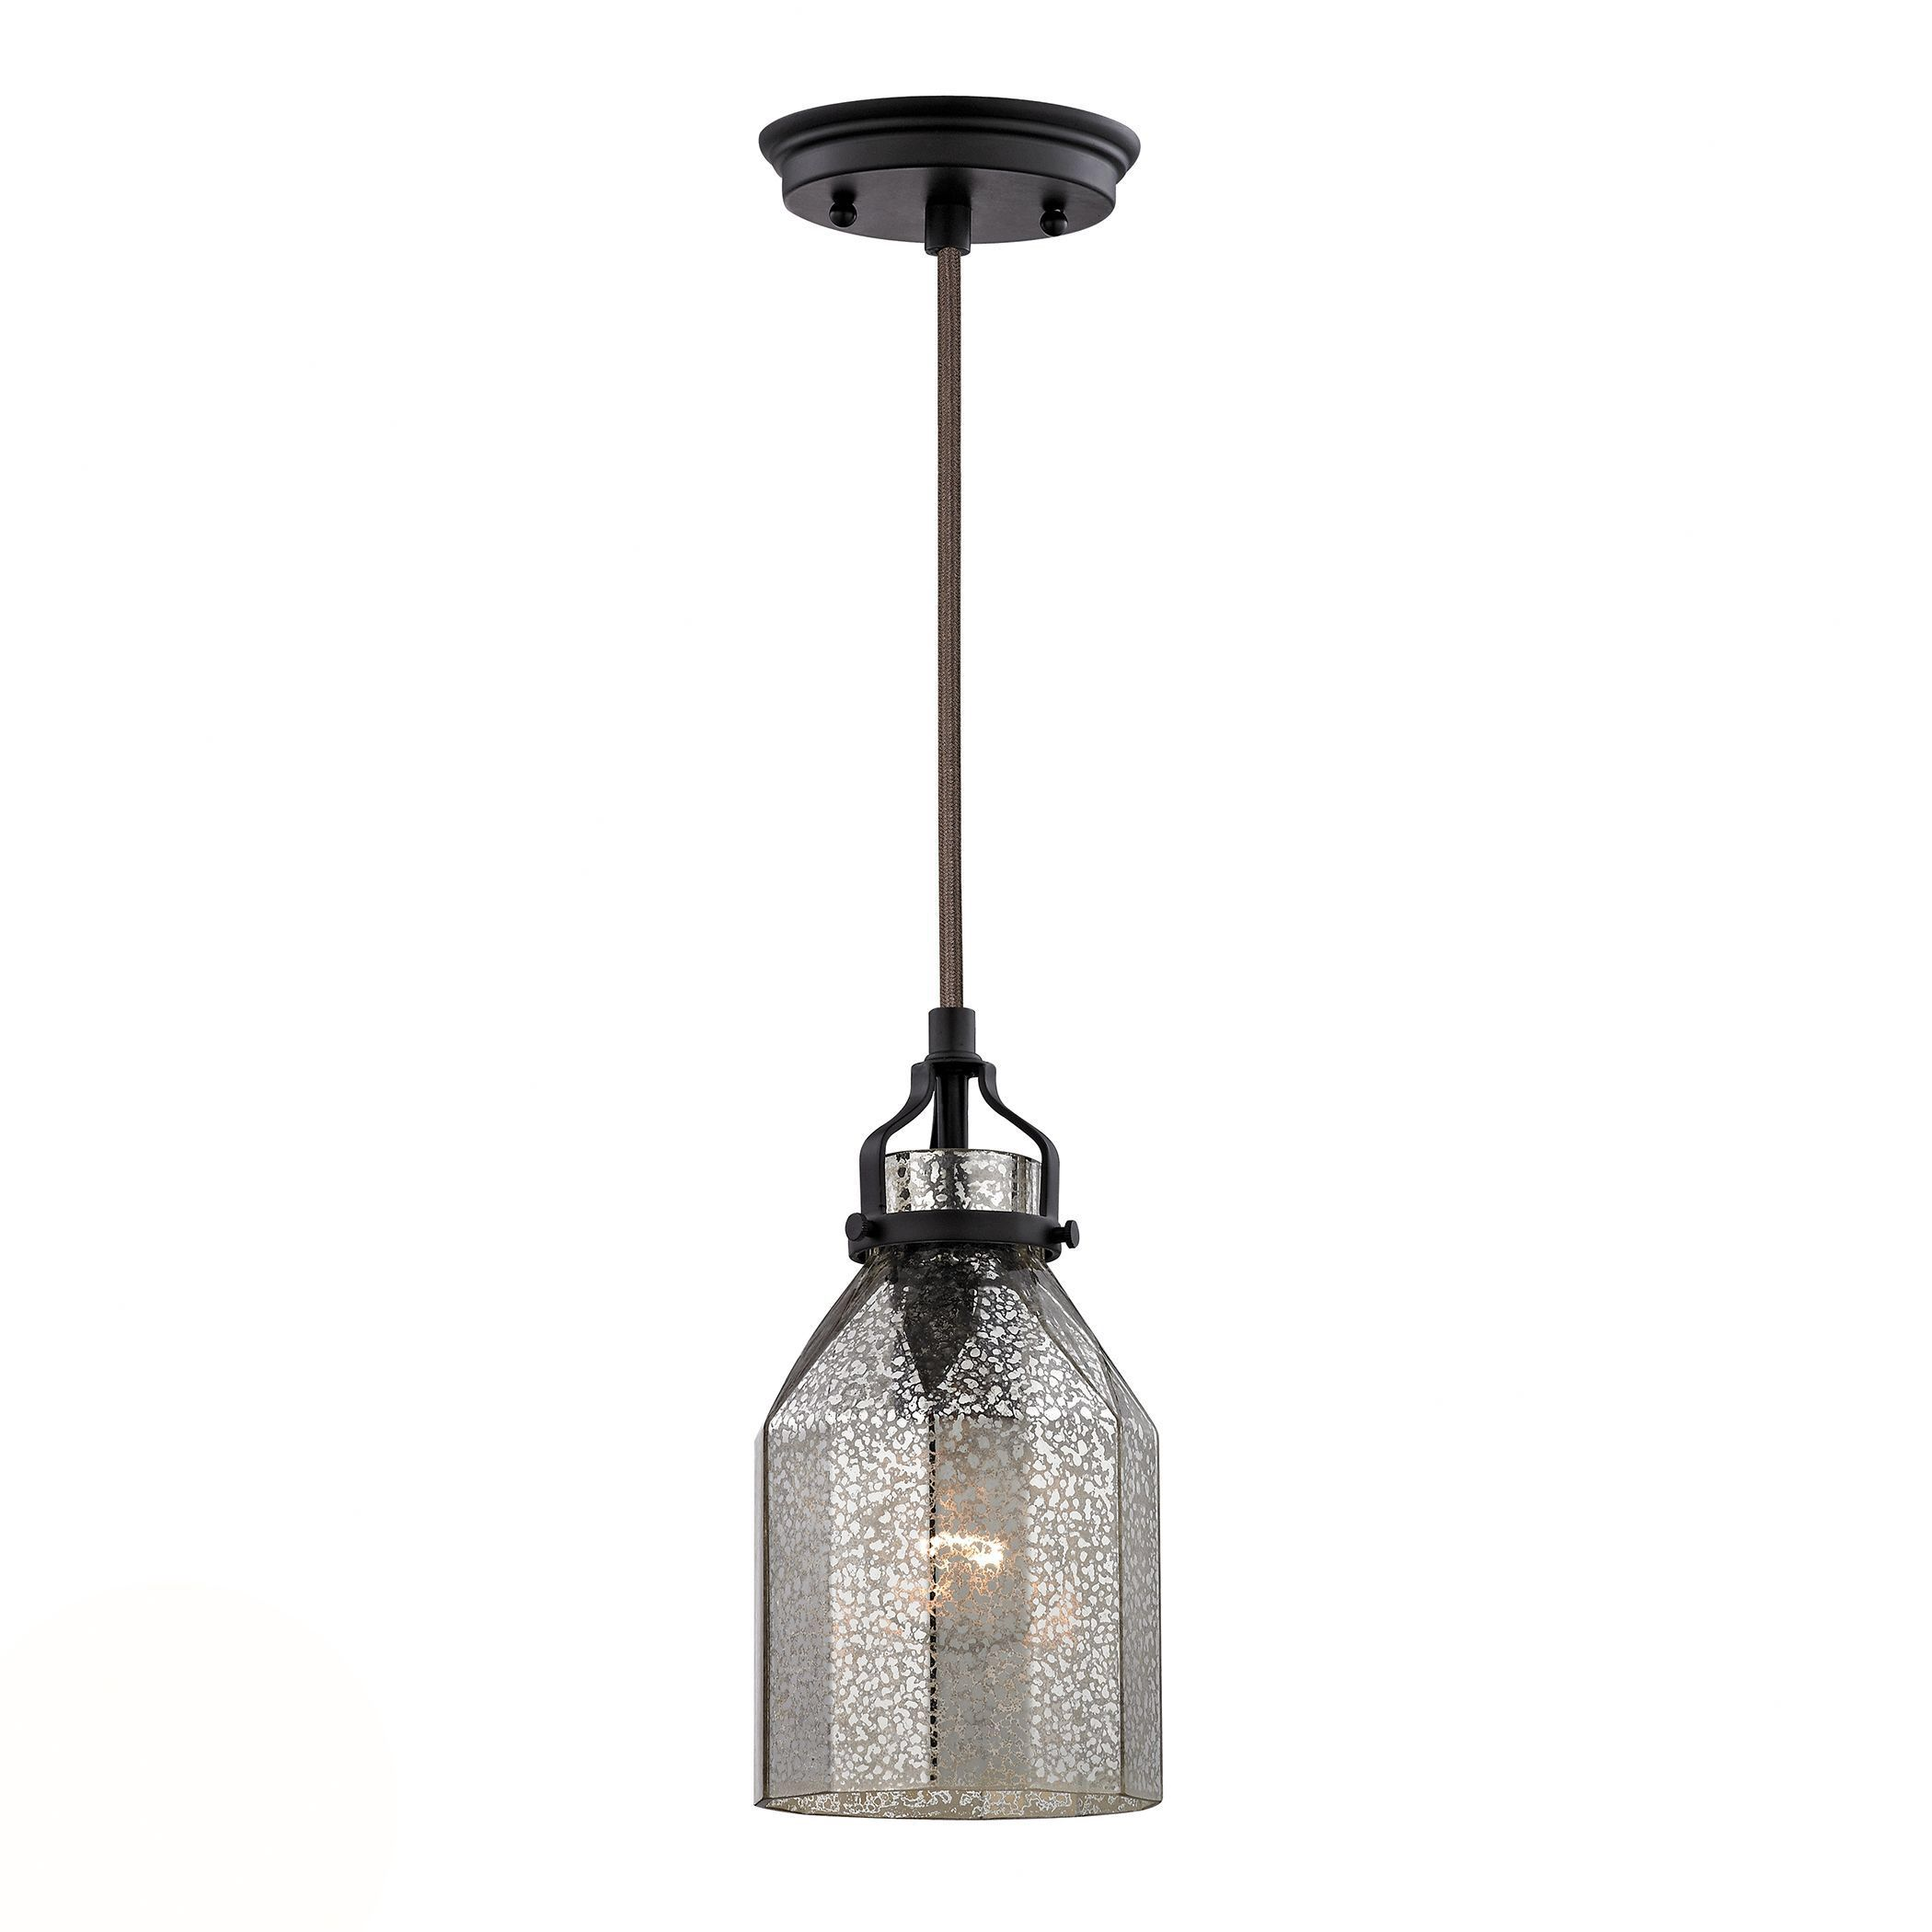 pendant semi full wonderful globes kitchen wall clear fixture contemporary fixtures gracious sink solar glass awesome ceiling tags drum lights shipping great for online size nursery image pictures free light sconces antique seaside lighting baby flush outdoor shades mercury lamps over boy rustic of island